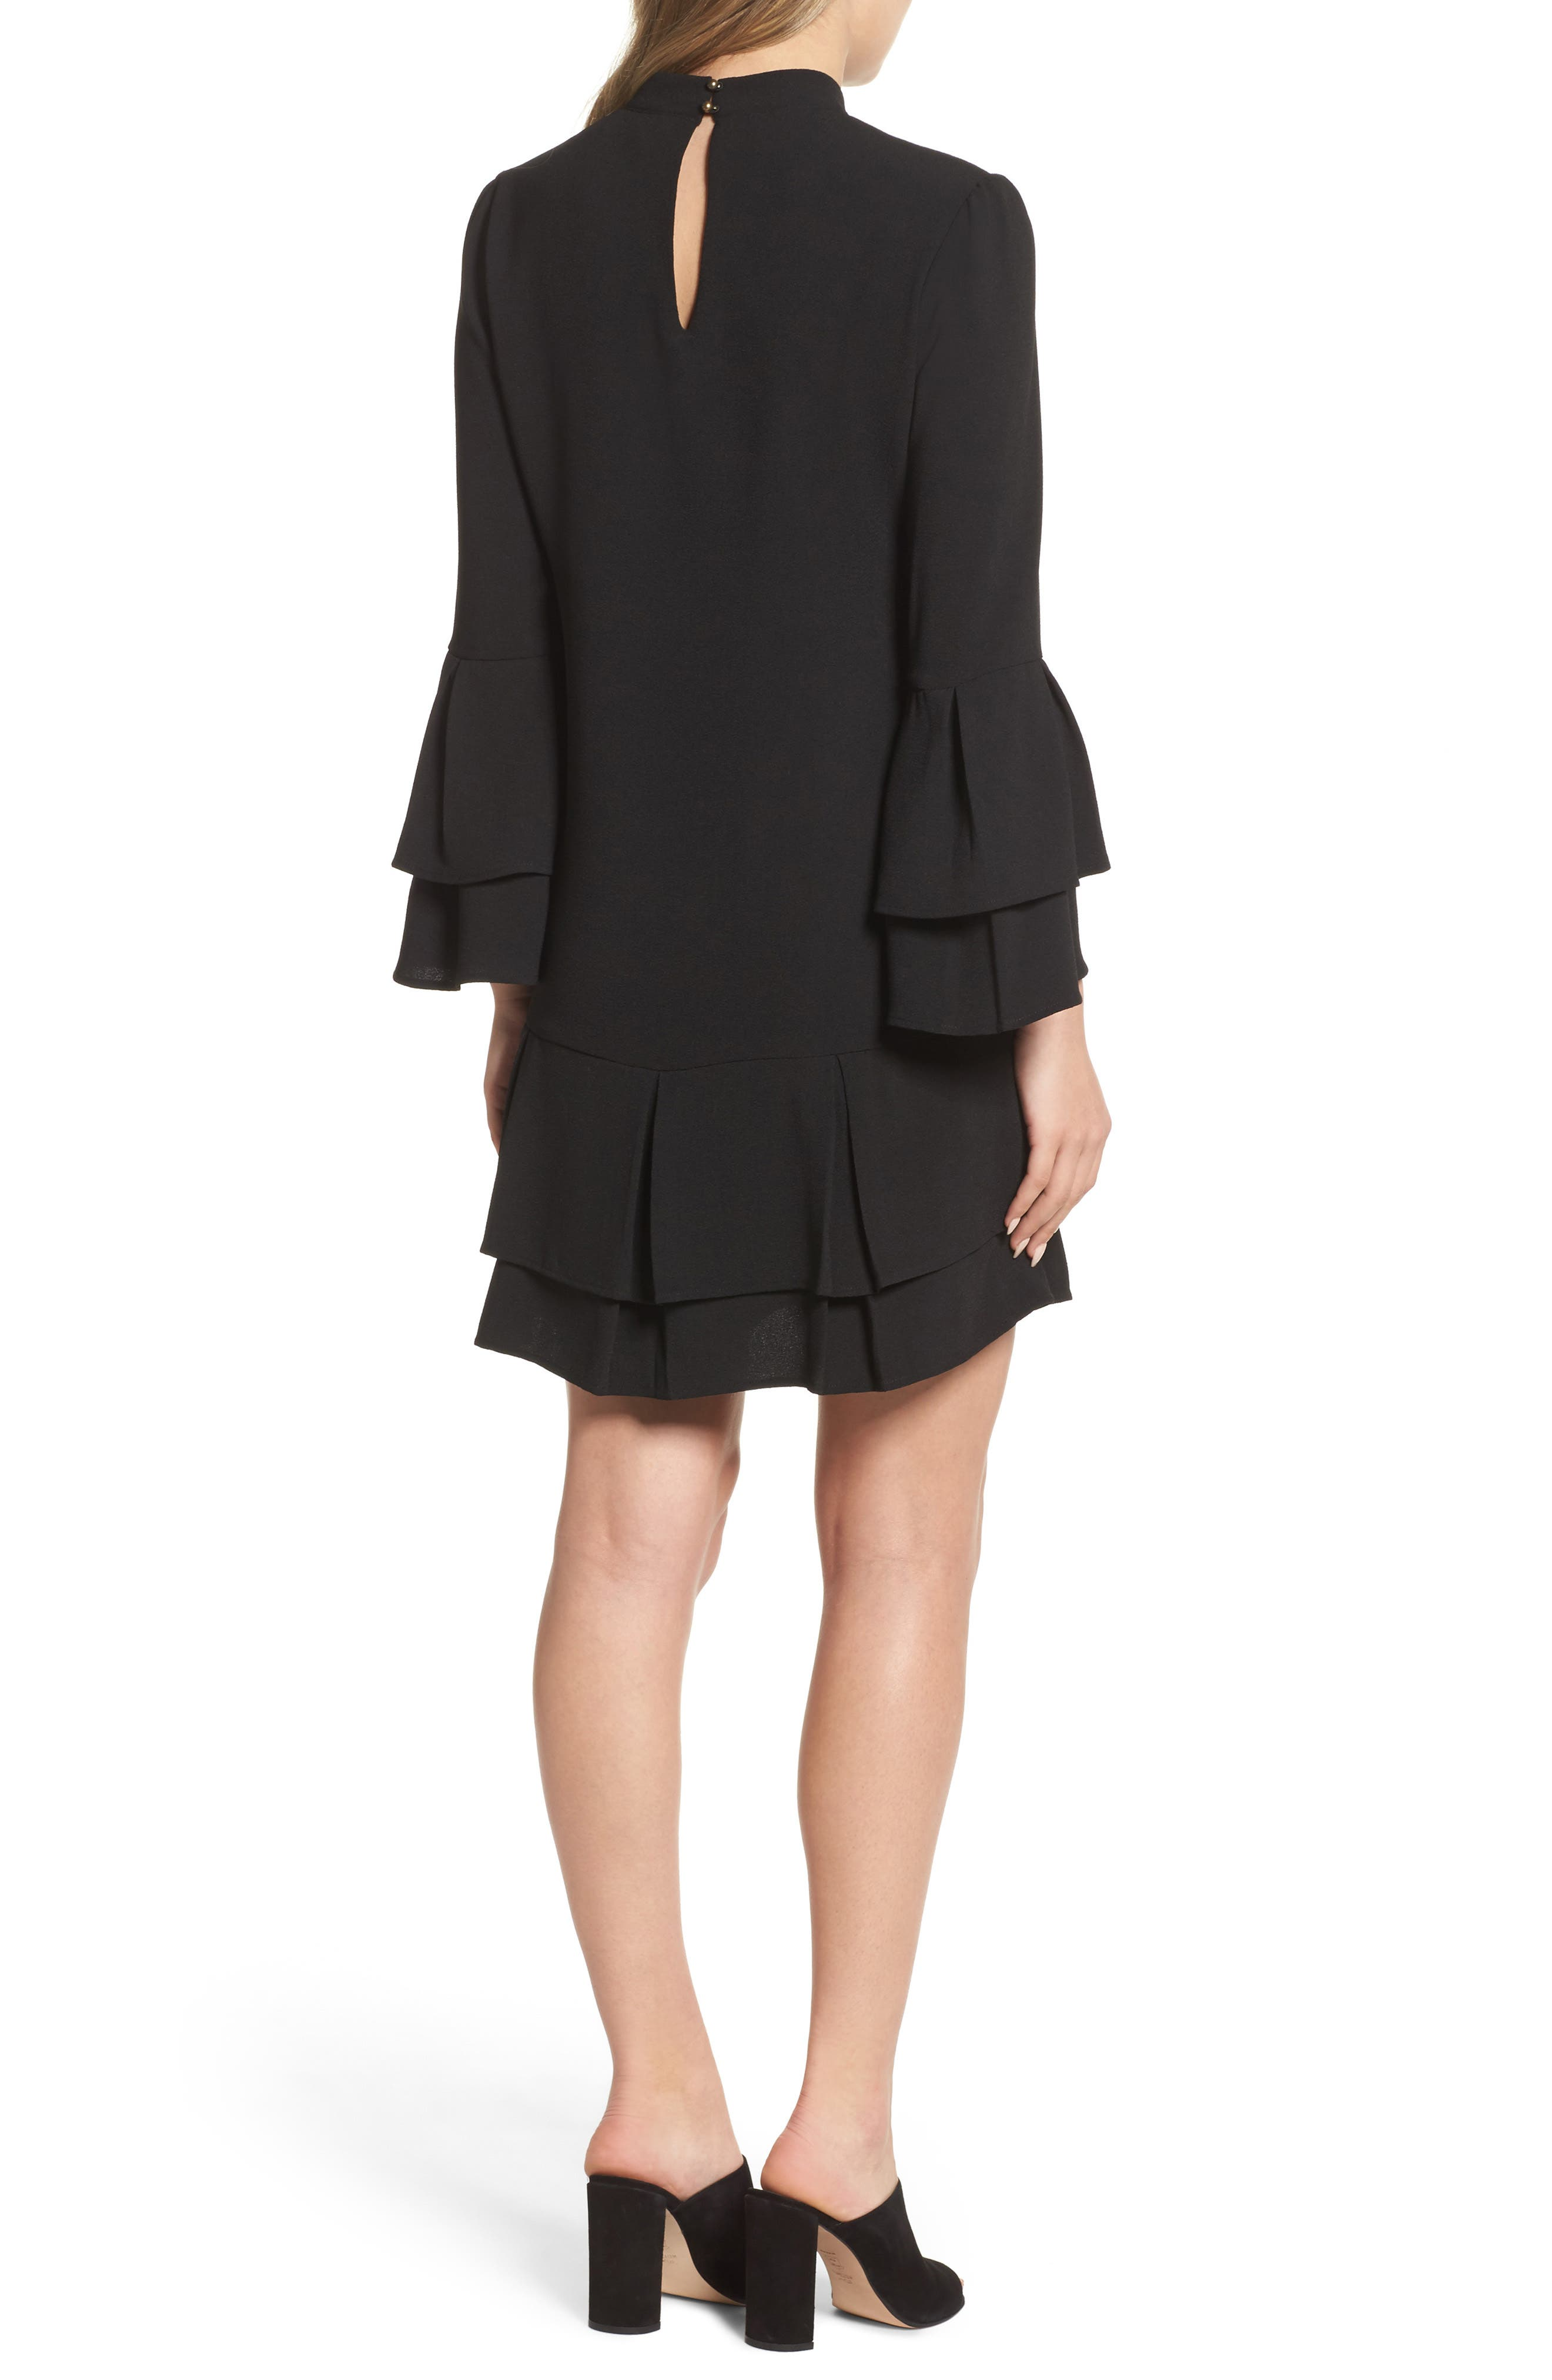 Tiered Sleeve Shift Dress,                             Alternate thumbnail 2, color,                             Black